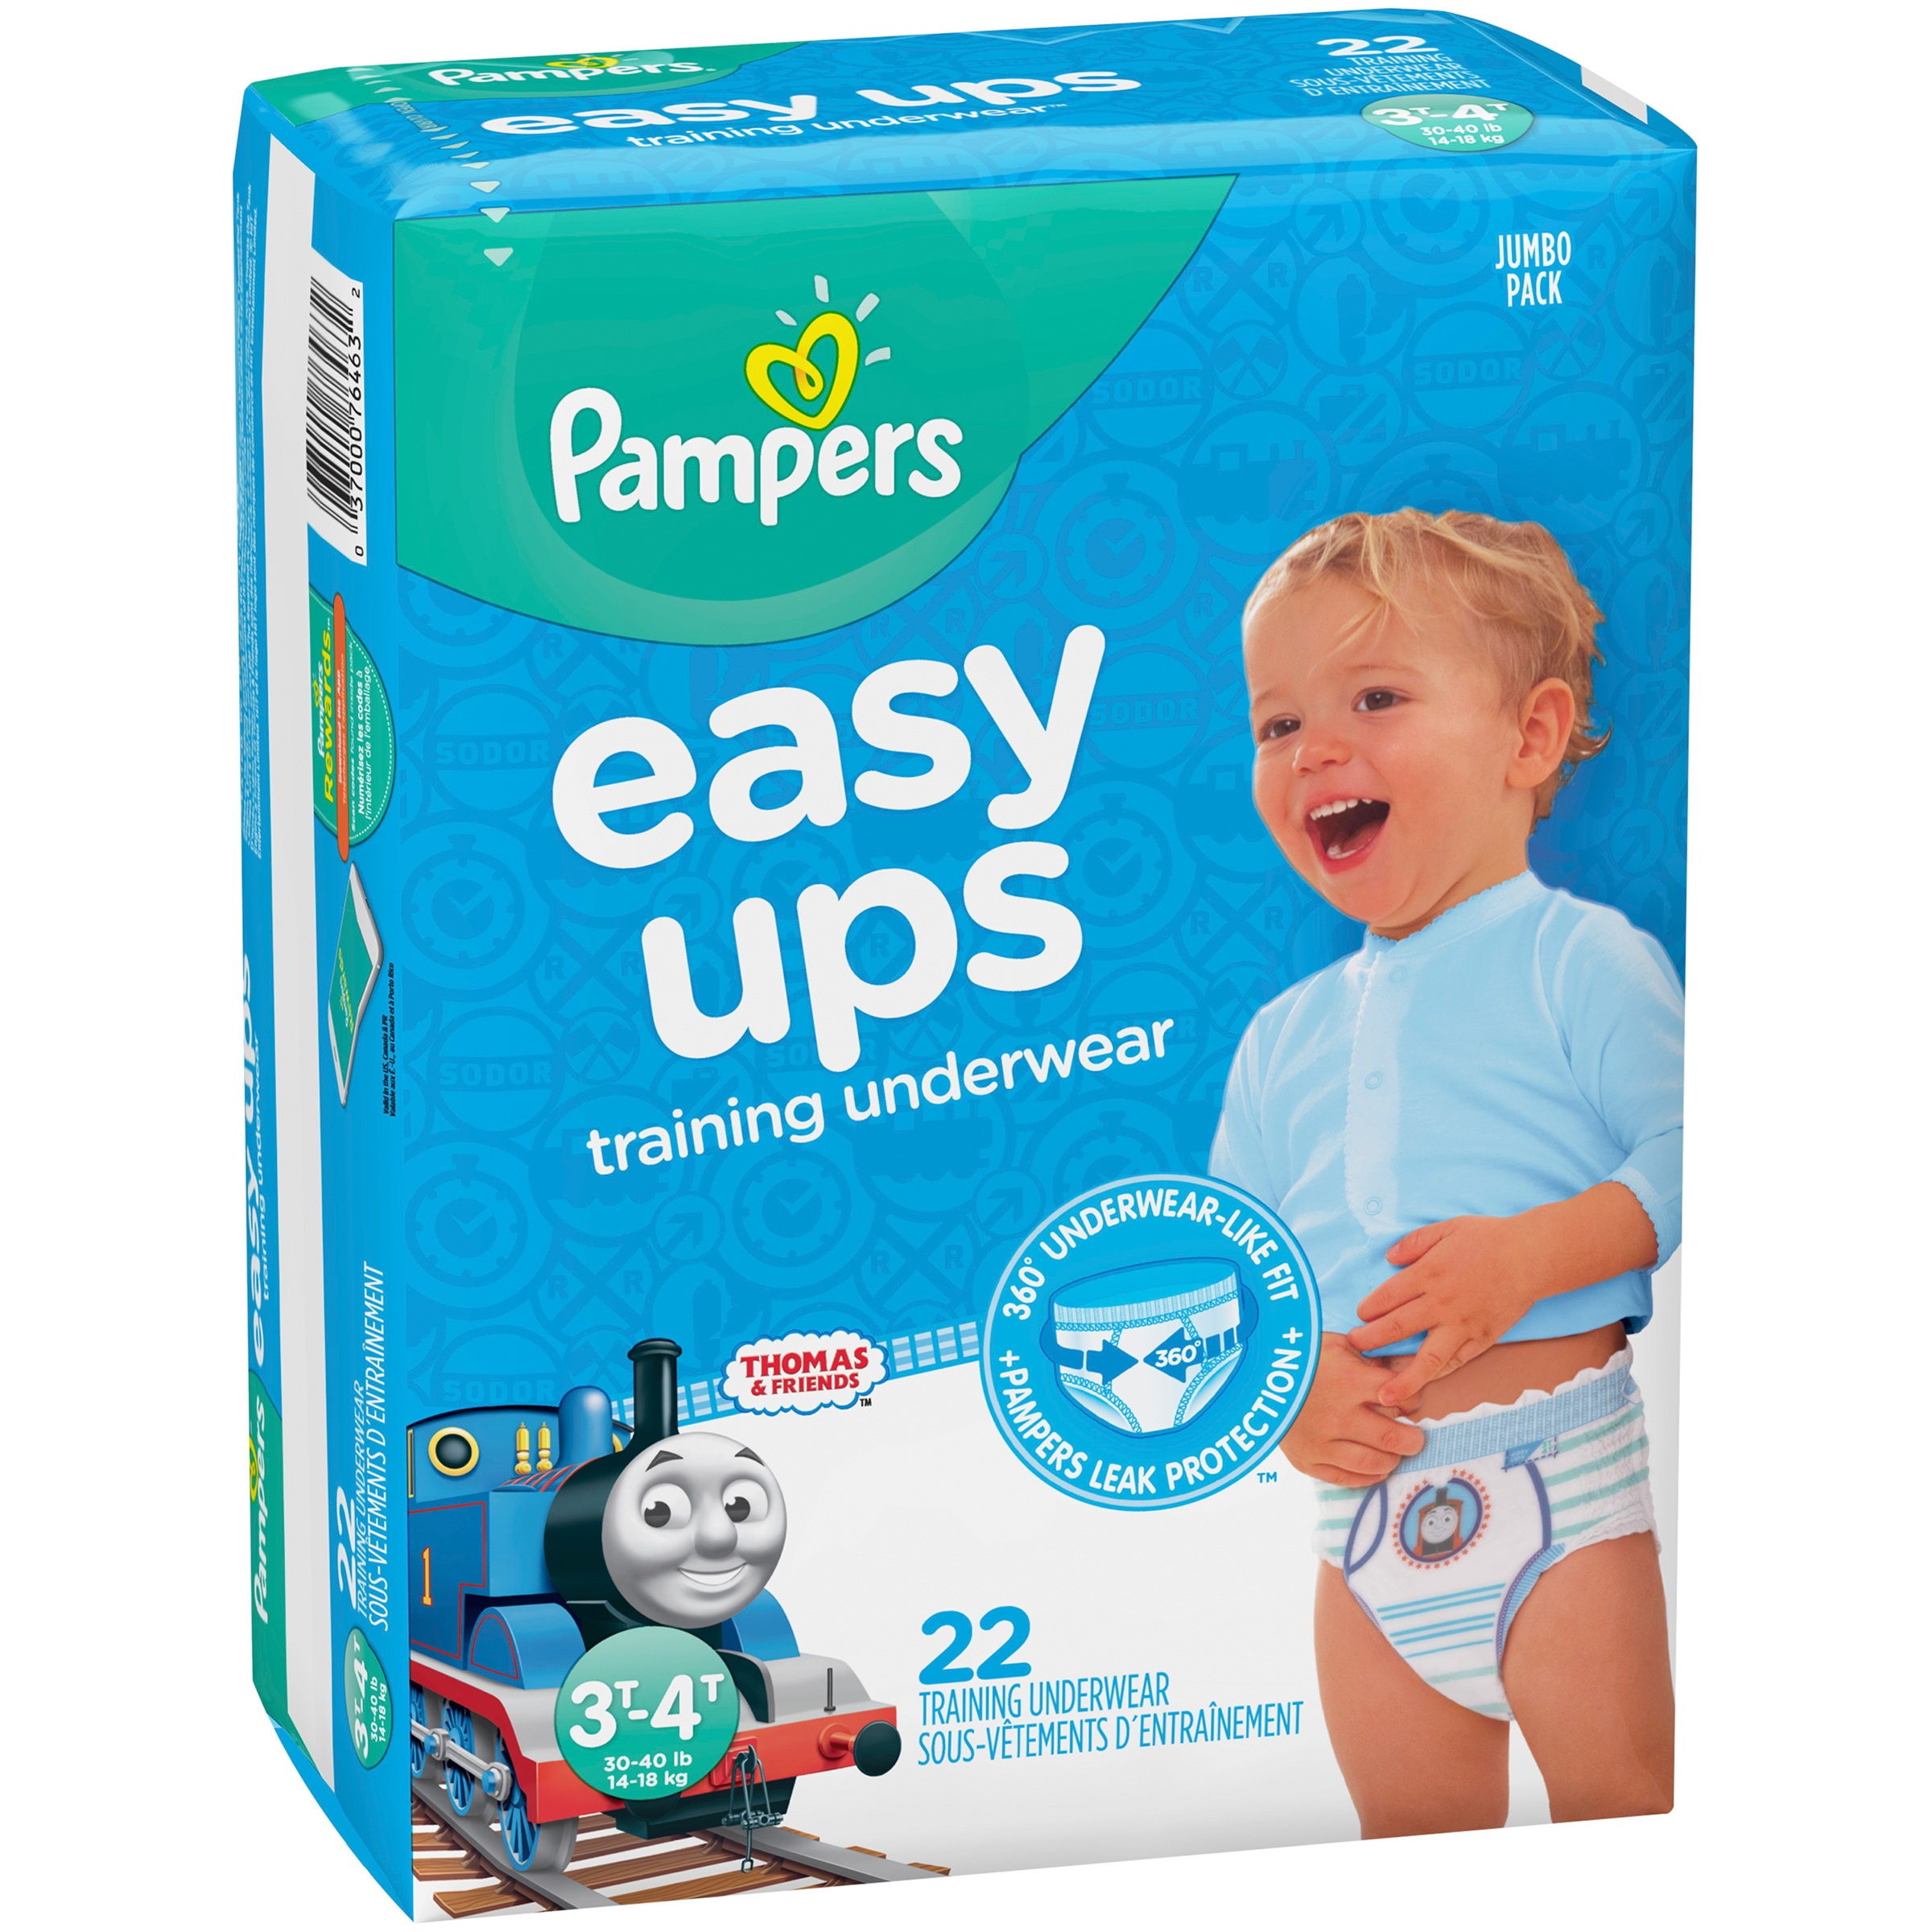 Pampers Easy Ups Thomas & Friends™ Training Underwear Size 3T–4T, 22 Count